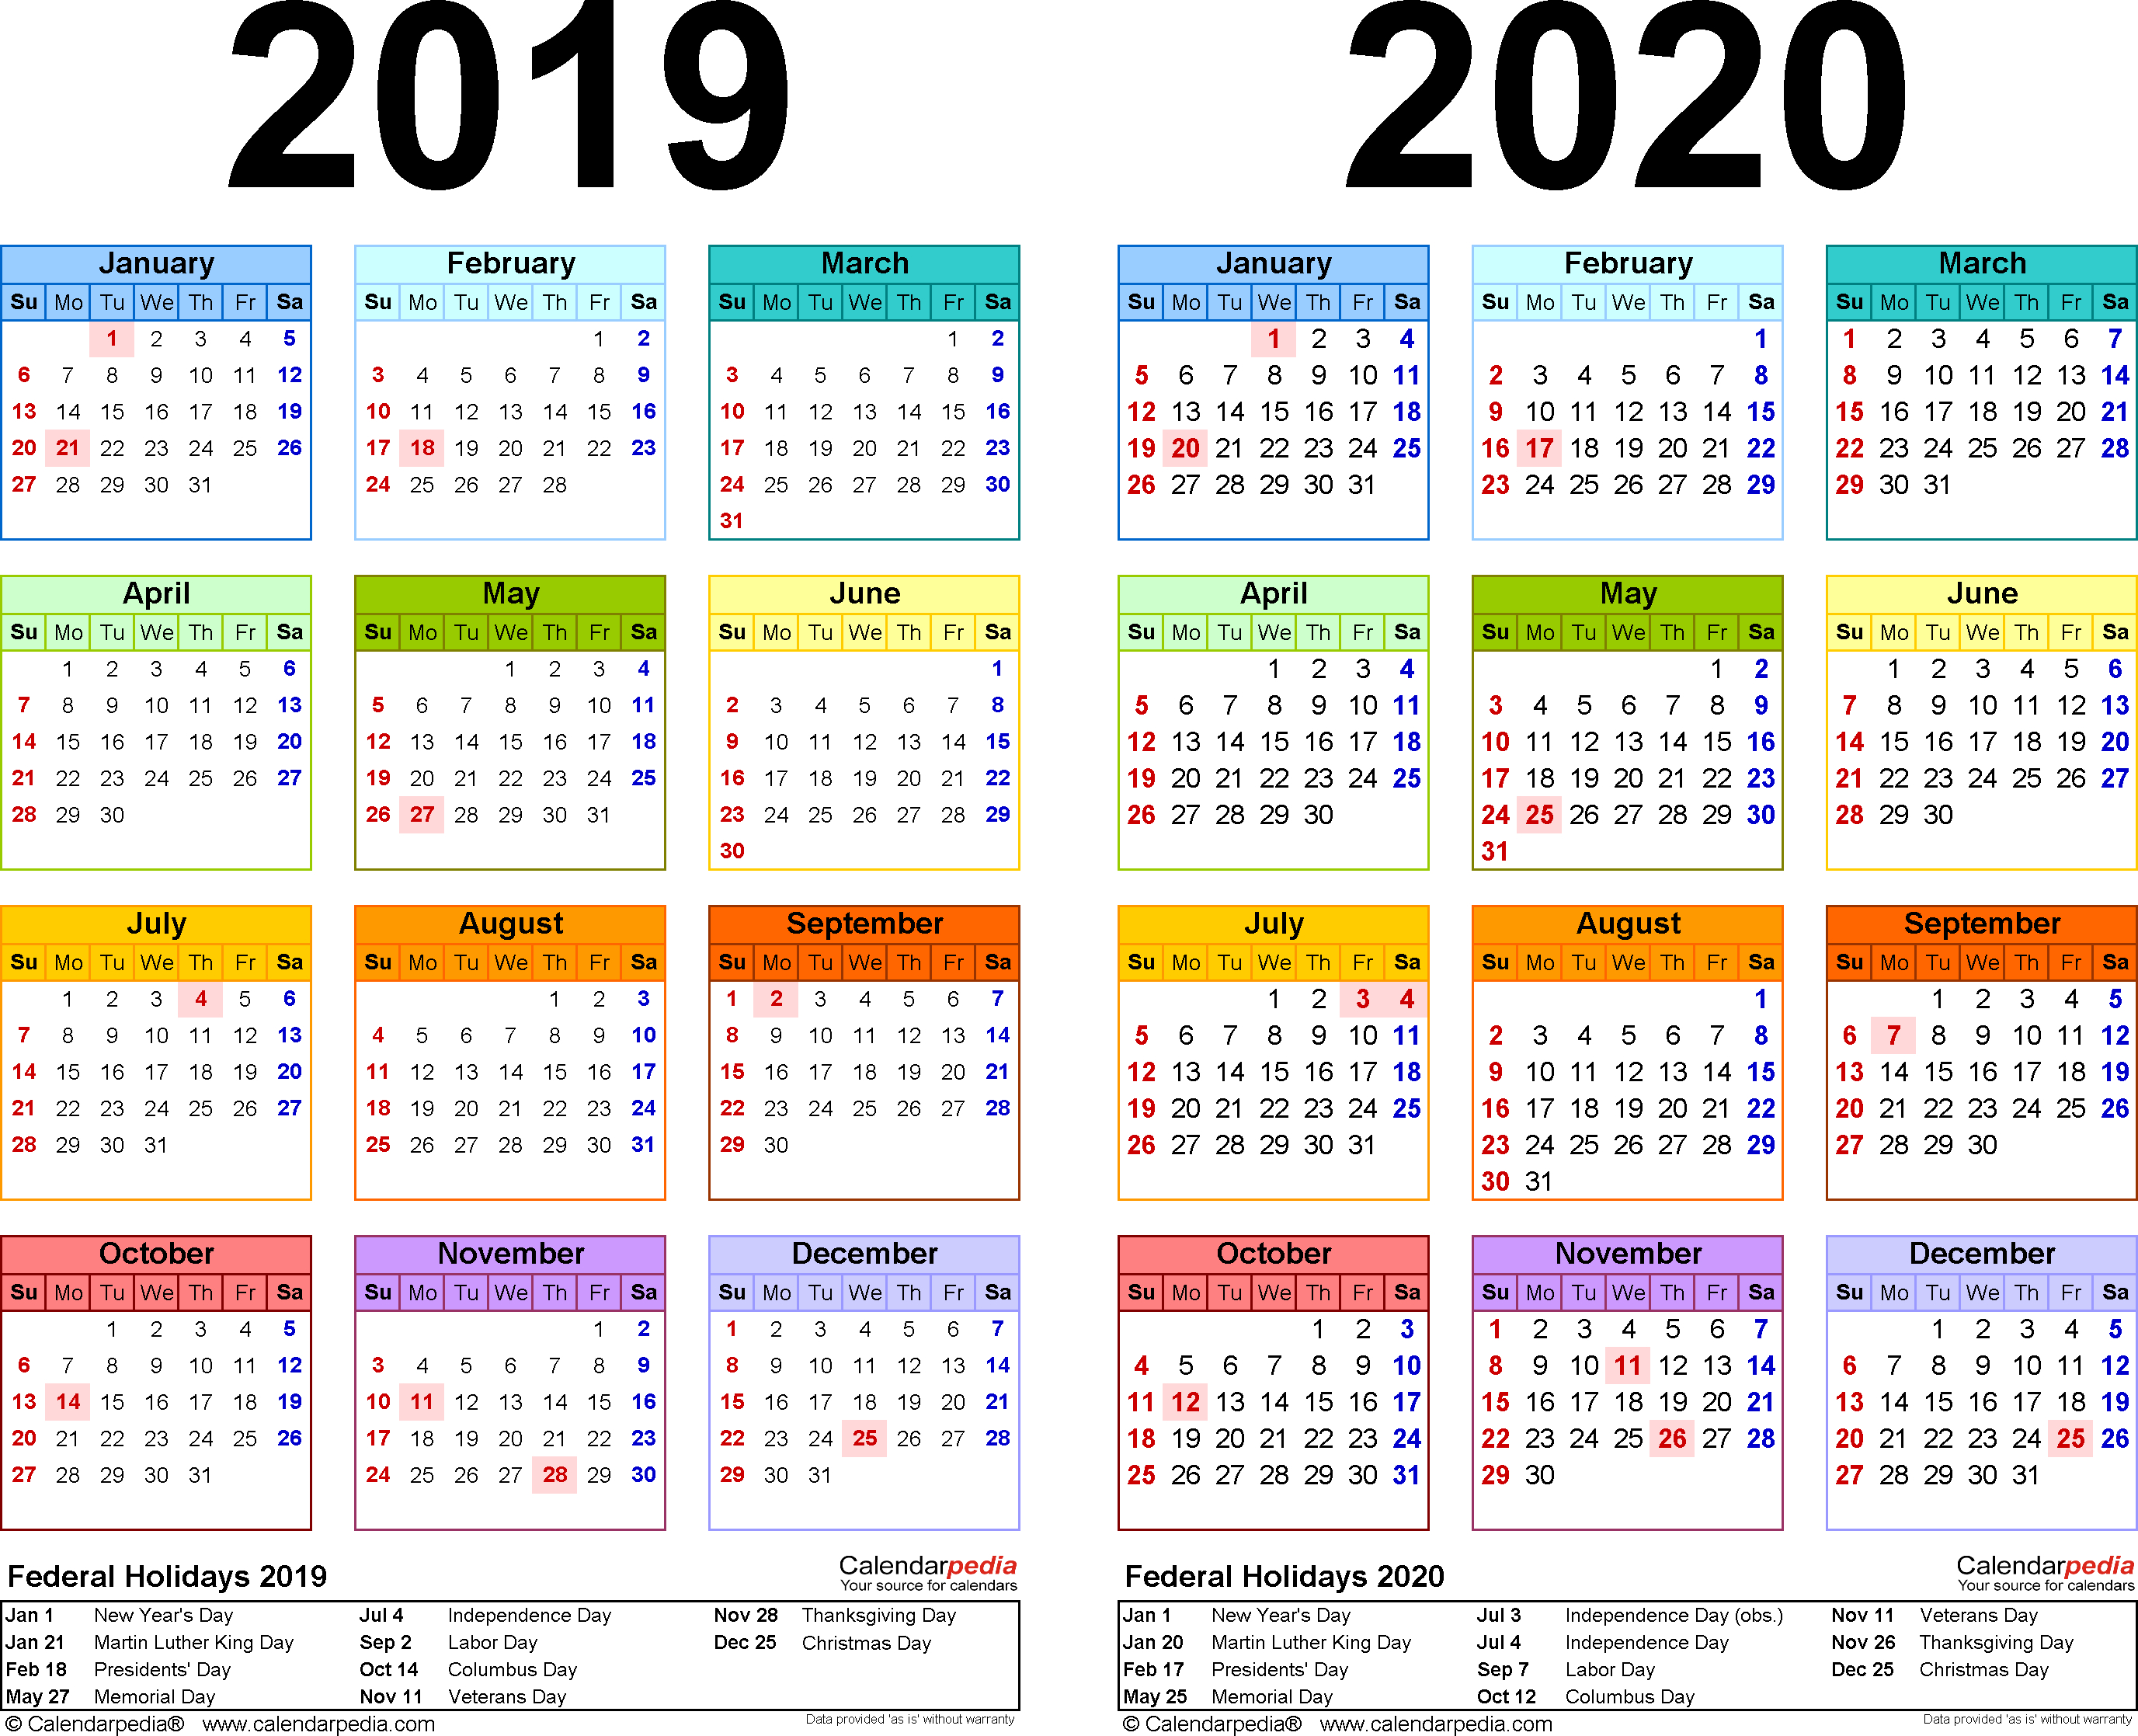 2019 2020 School Year Calendar With Holiday Us - Google Search intended for Federal Pay Period Calendar 2020 Printable